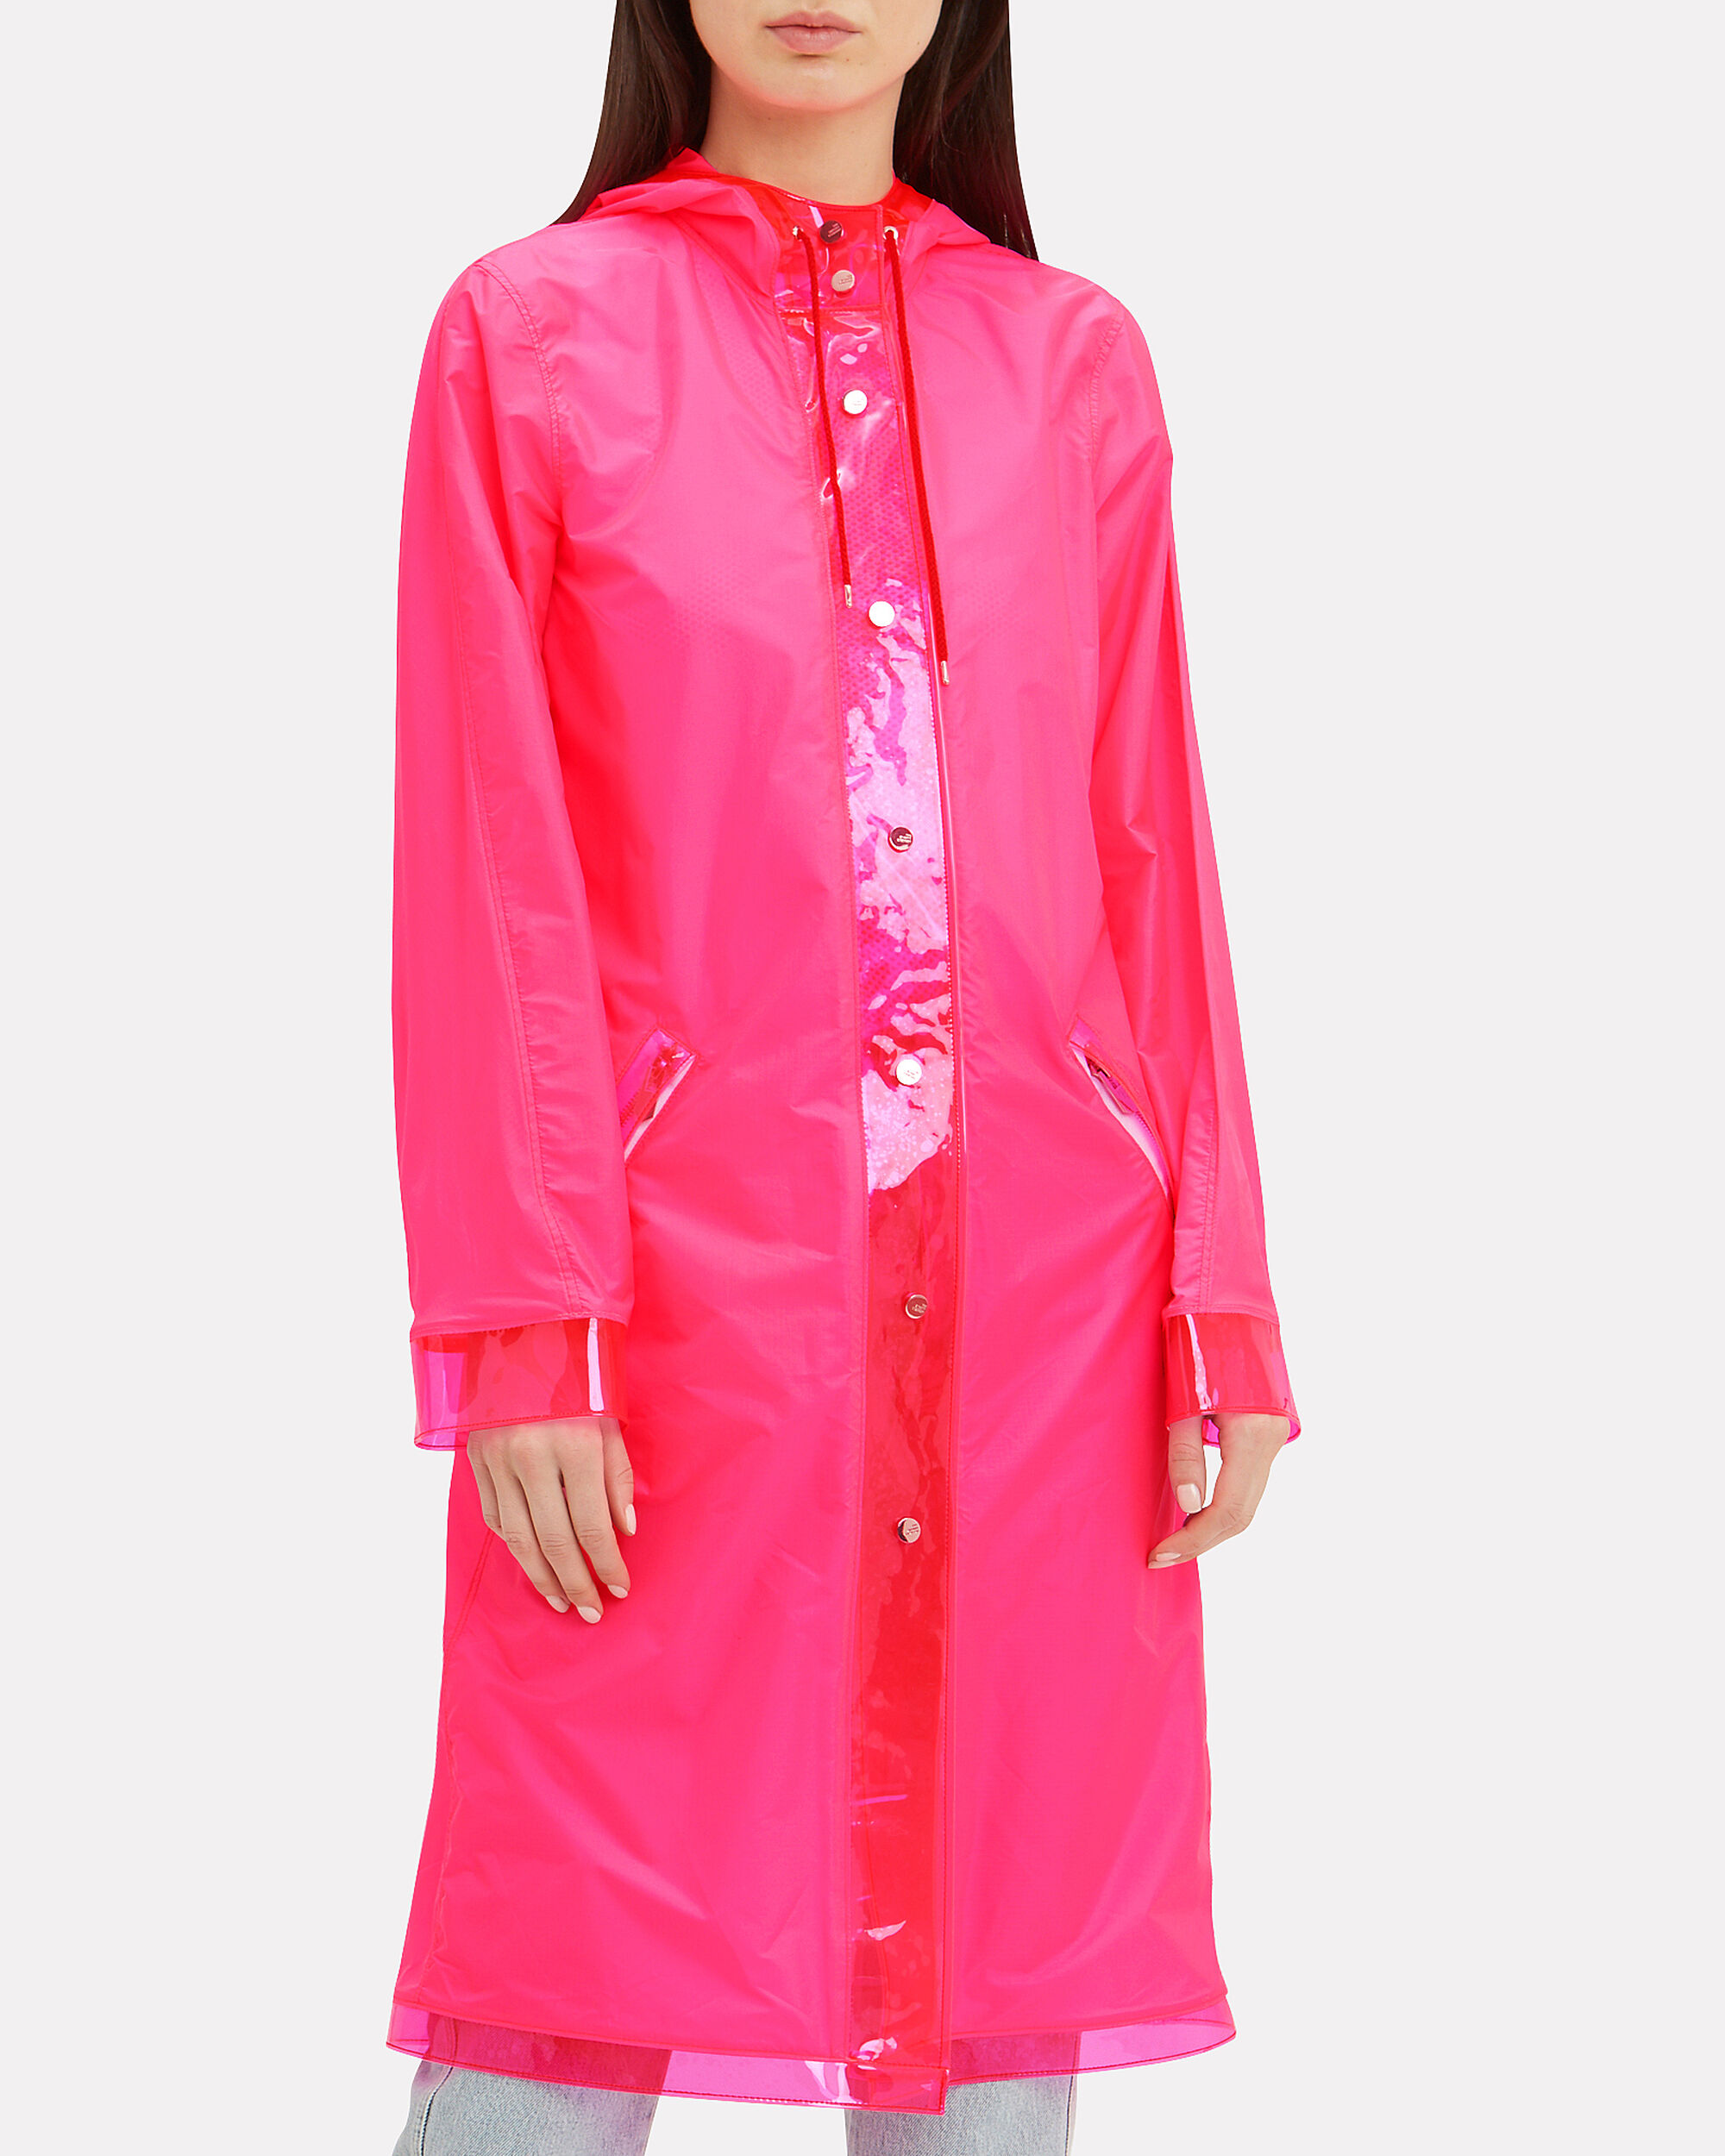 The Seaford Neon Pink Raincoat, NEON PINK, hi-res